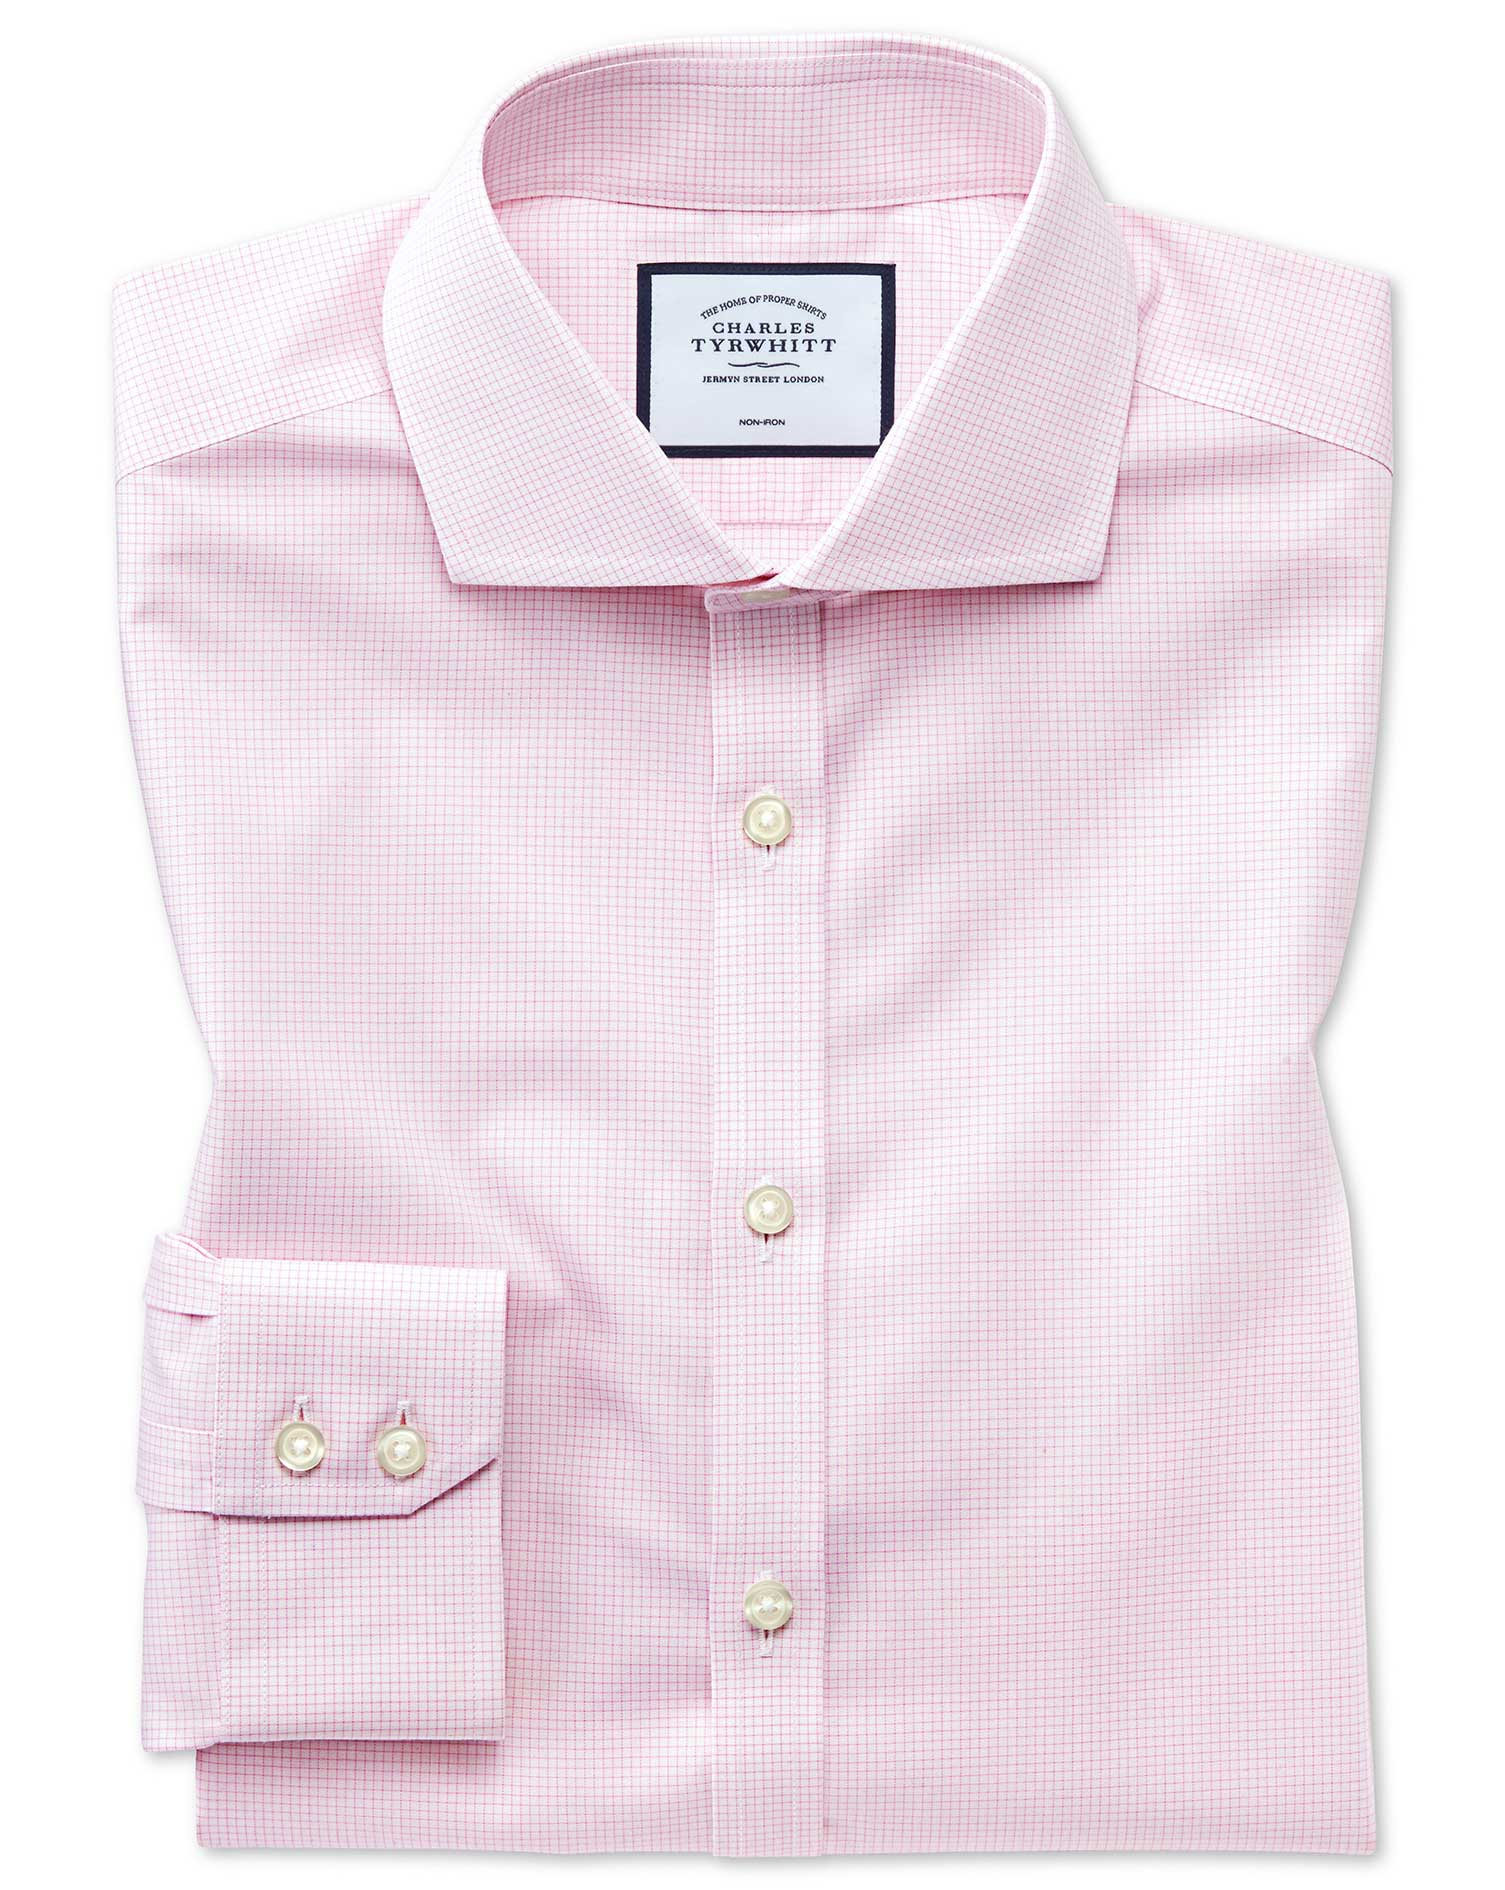 Extra Slim Fit Non-Iron 4-Way Stretch Pink Check Cotton Formal Shirt Single Cuff Size 17.5/35 by Cha